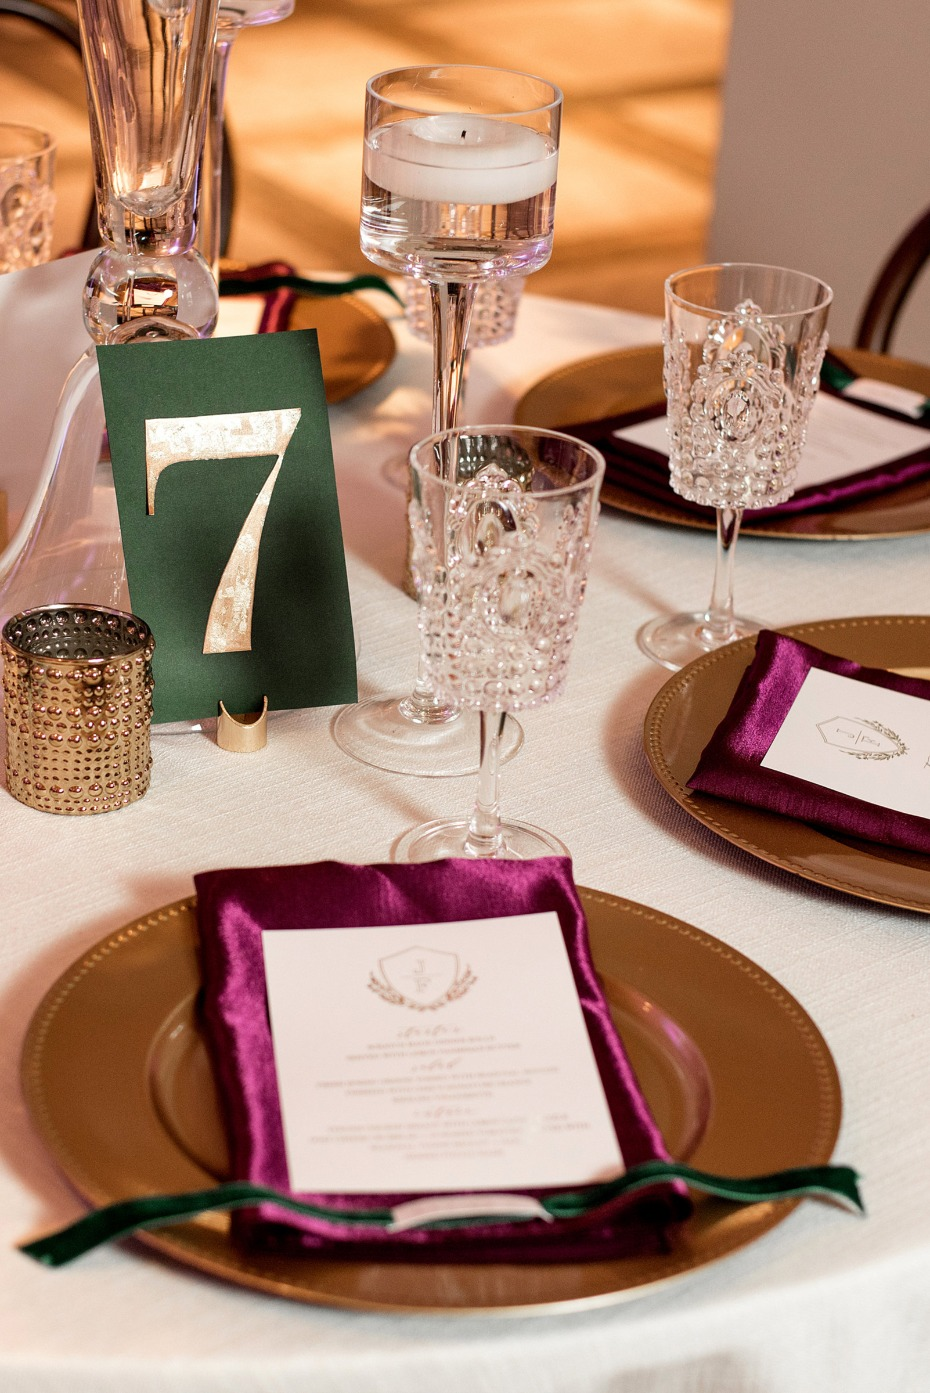 elegant and jewel toned wedding place setting